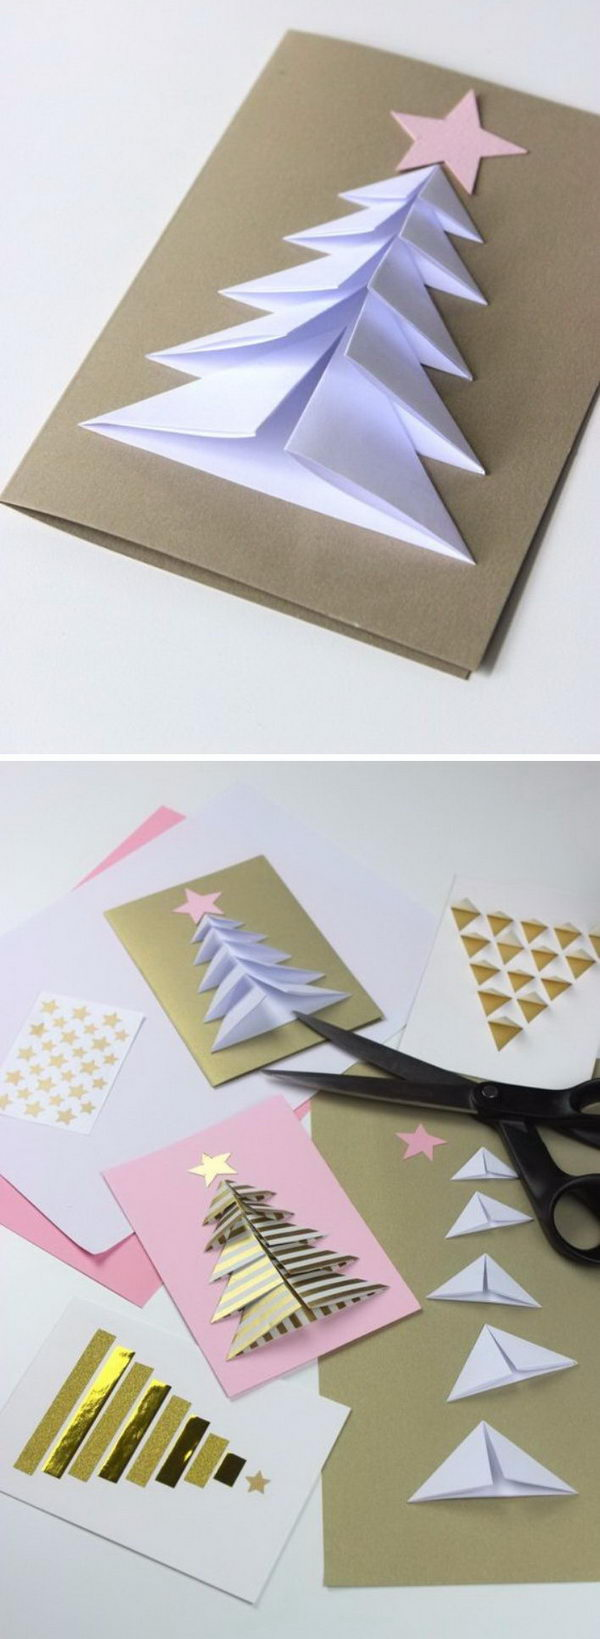 20+ Handmade Christmas Card Ideas 2017